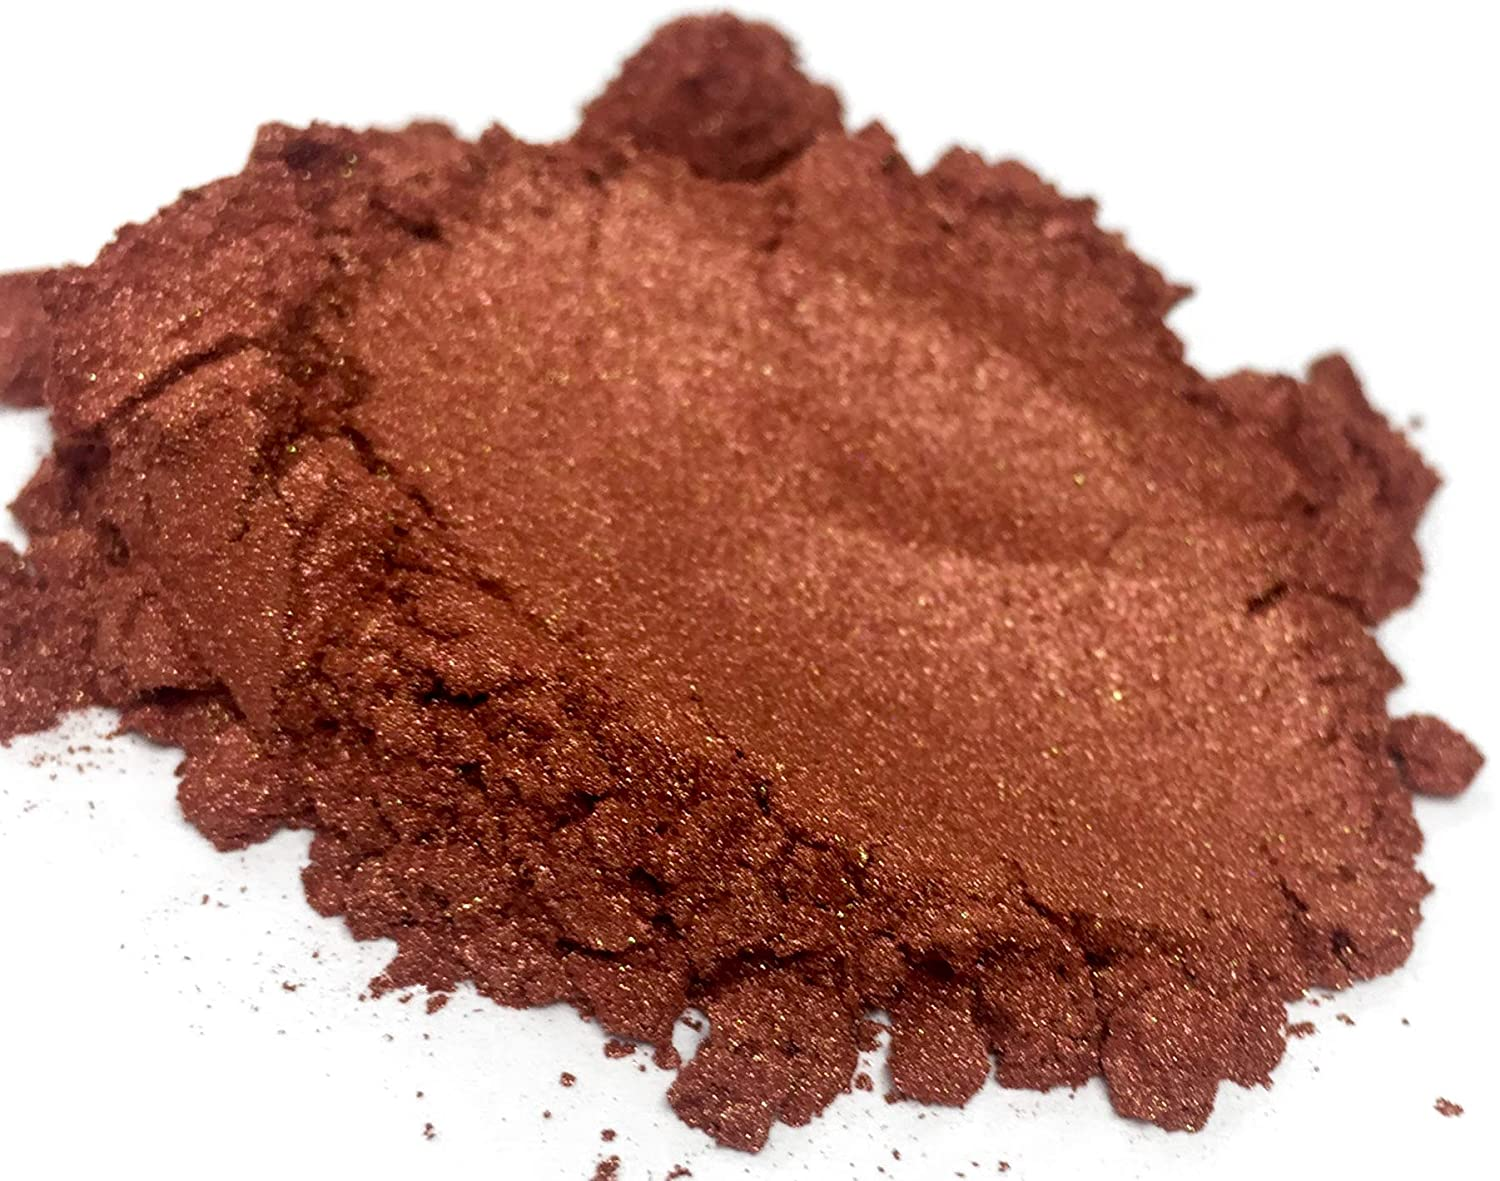 42g/1.5oz COPPER PENNY Mica Powder Pigment (Epoxy, Resin, Soap, Plastidip) Black Diamond Pigments™ by CCS SP-1